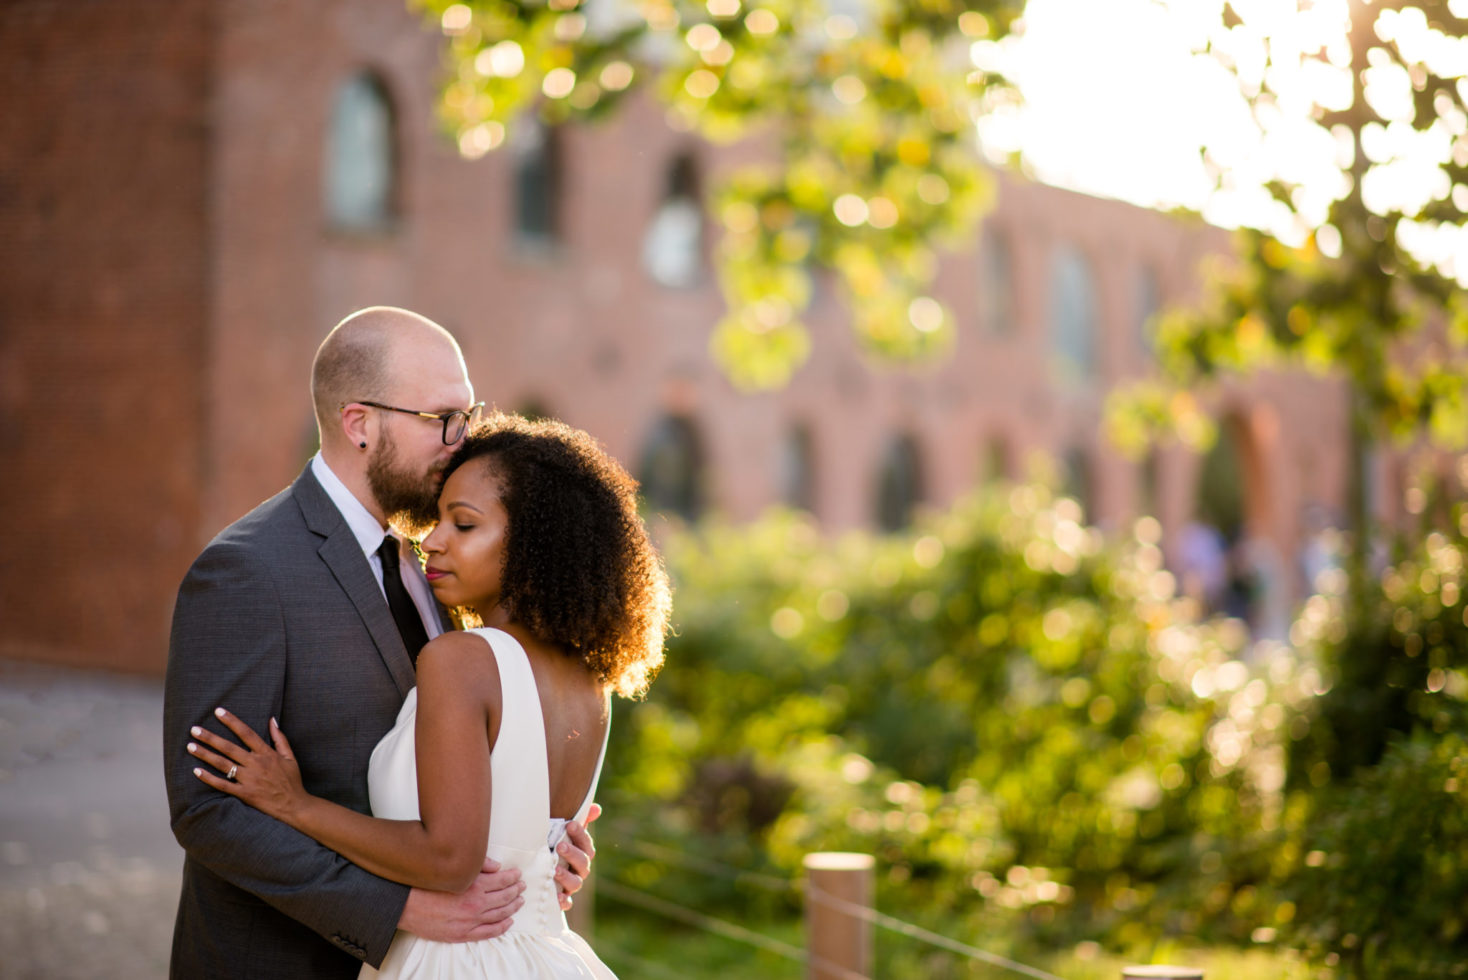 Cleveland Wedding Photography New York Brooklyn Bridge Elopement Destination Photo